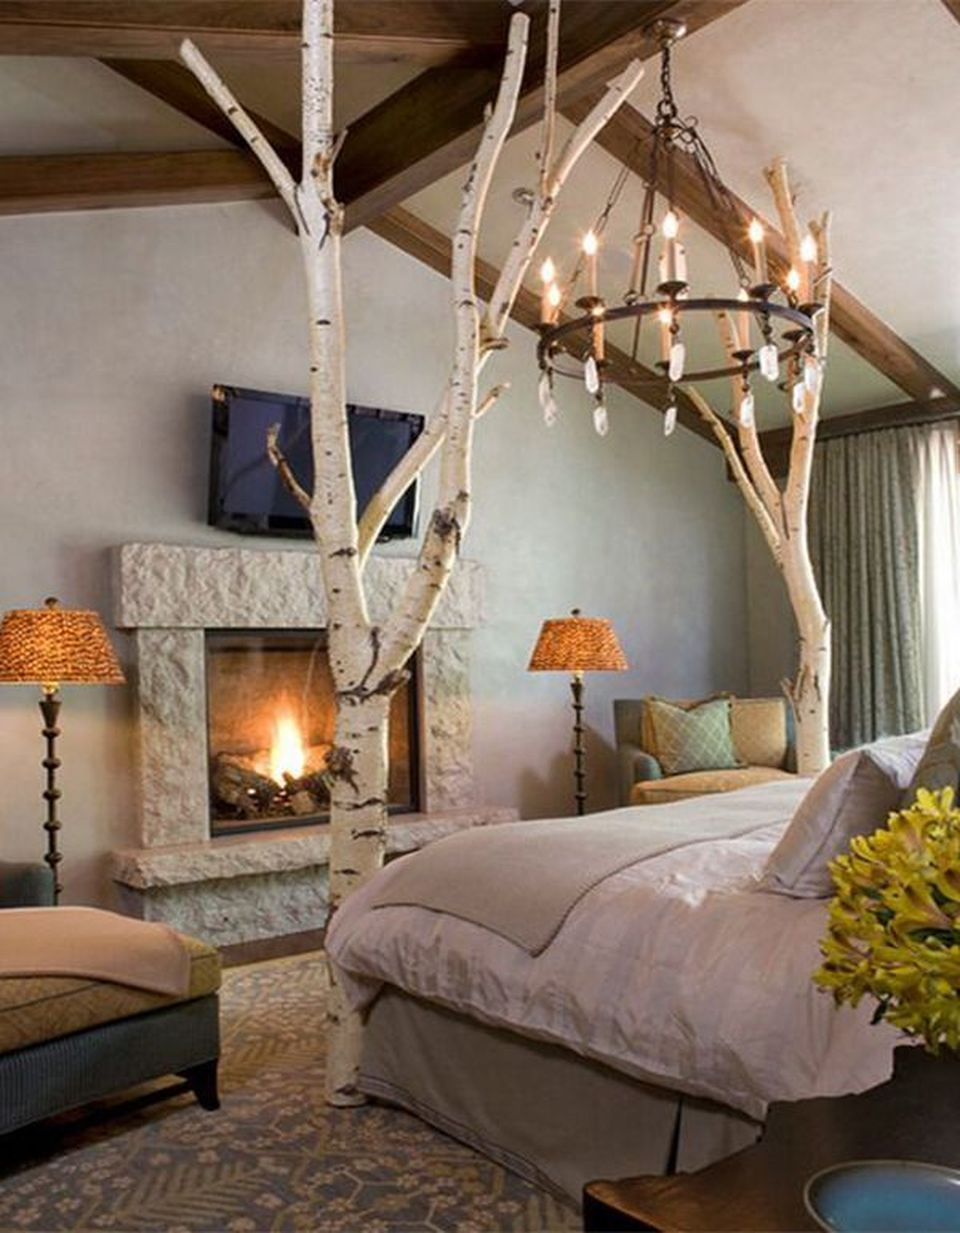 99 Lovely Romantic Bedroom Decorations Ideas For Couples Amazing